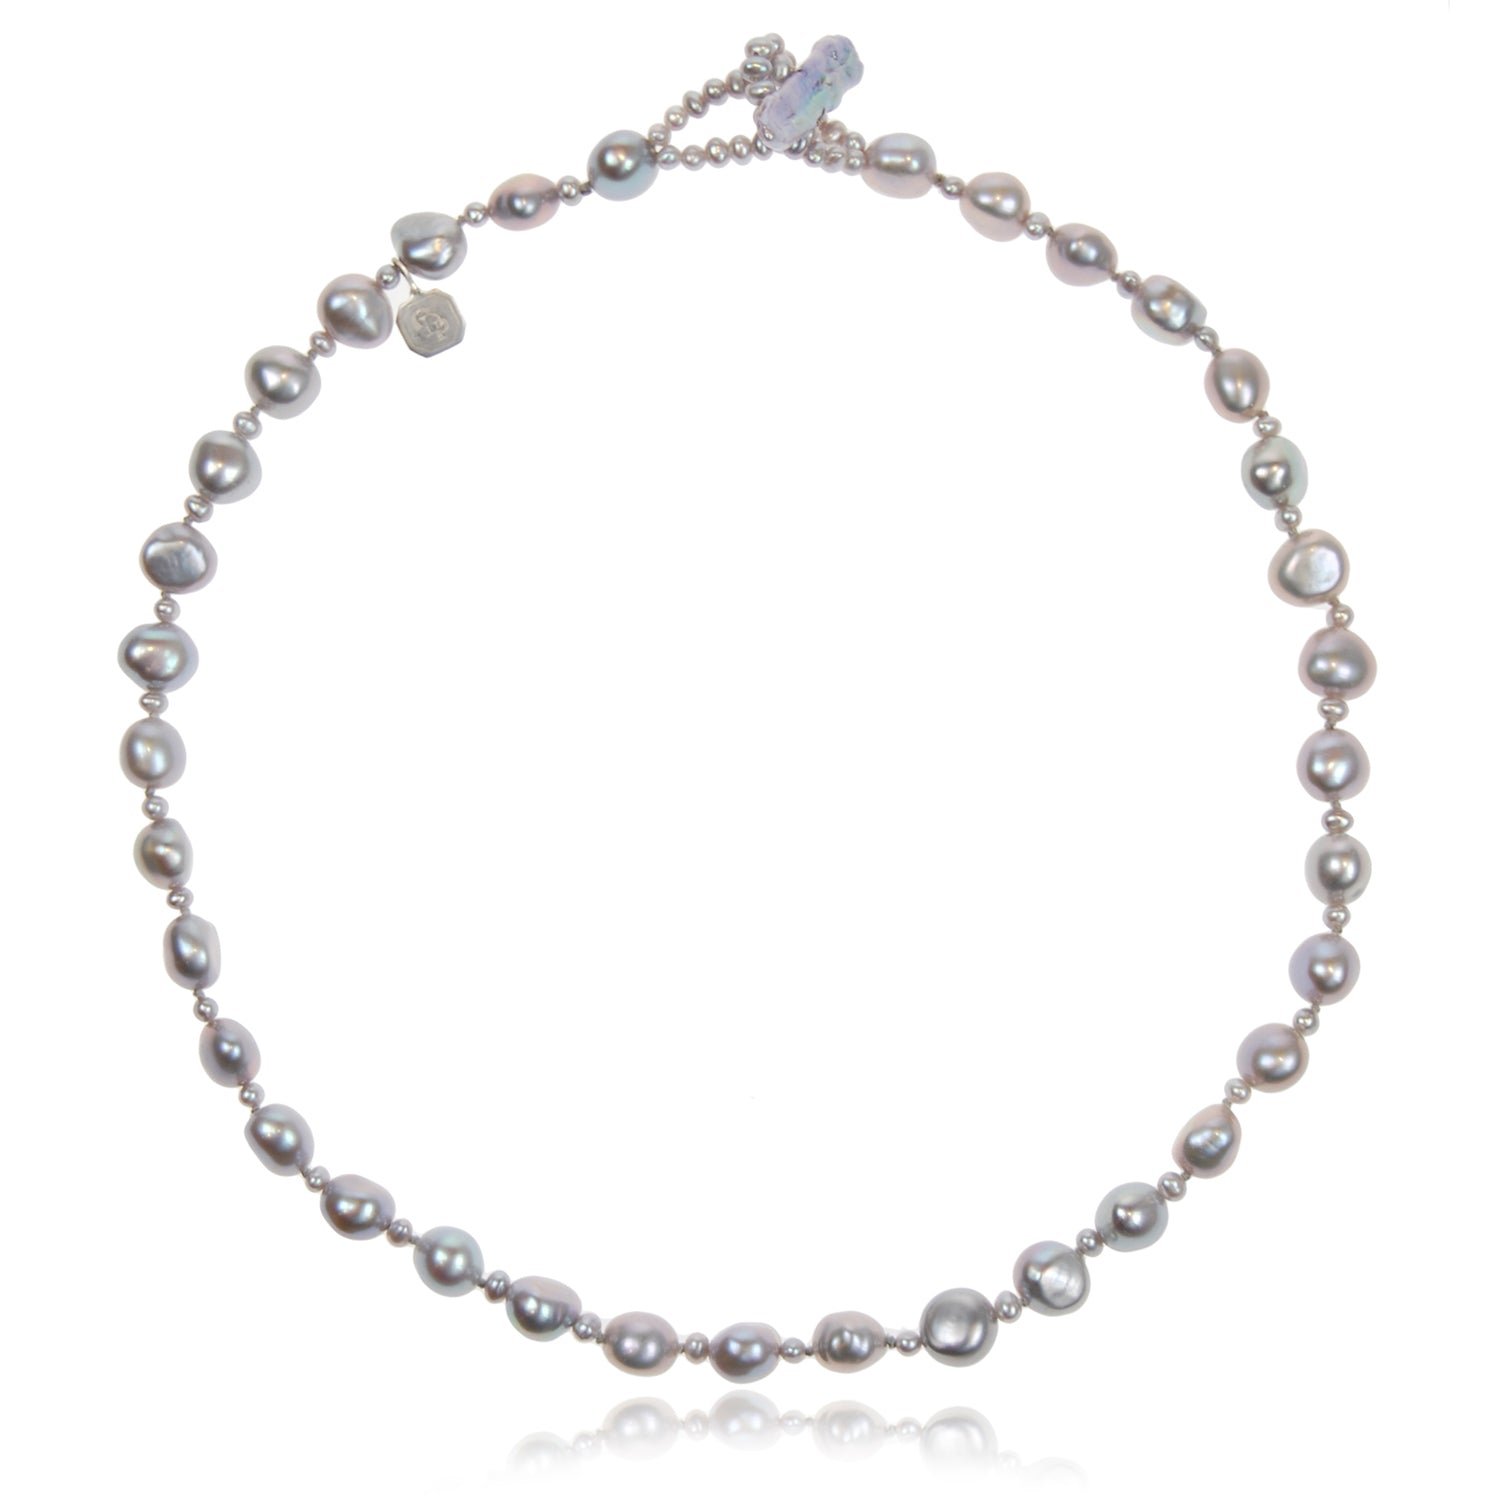 Single Strand Biwa and Seed Pearl Necklace in Grey